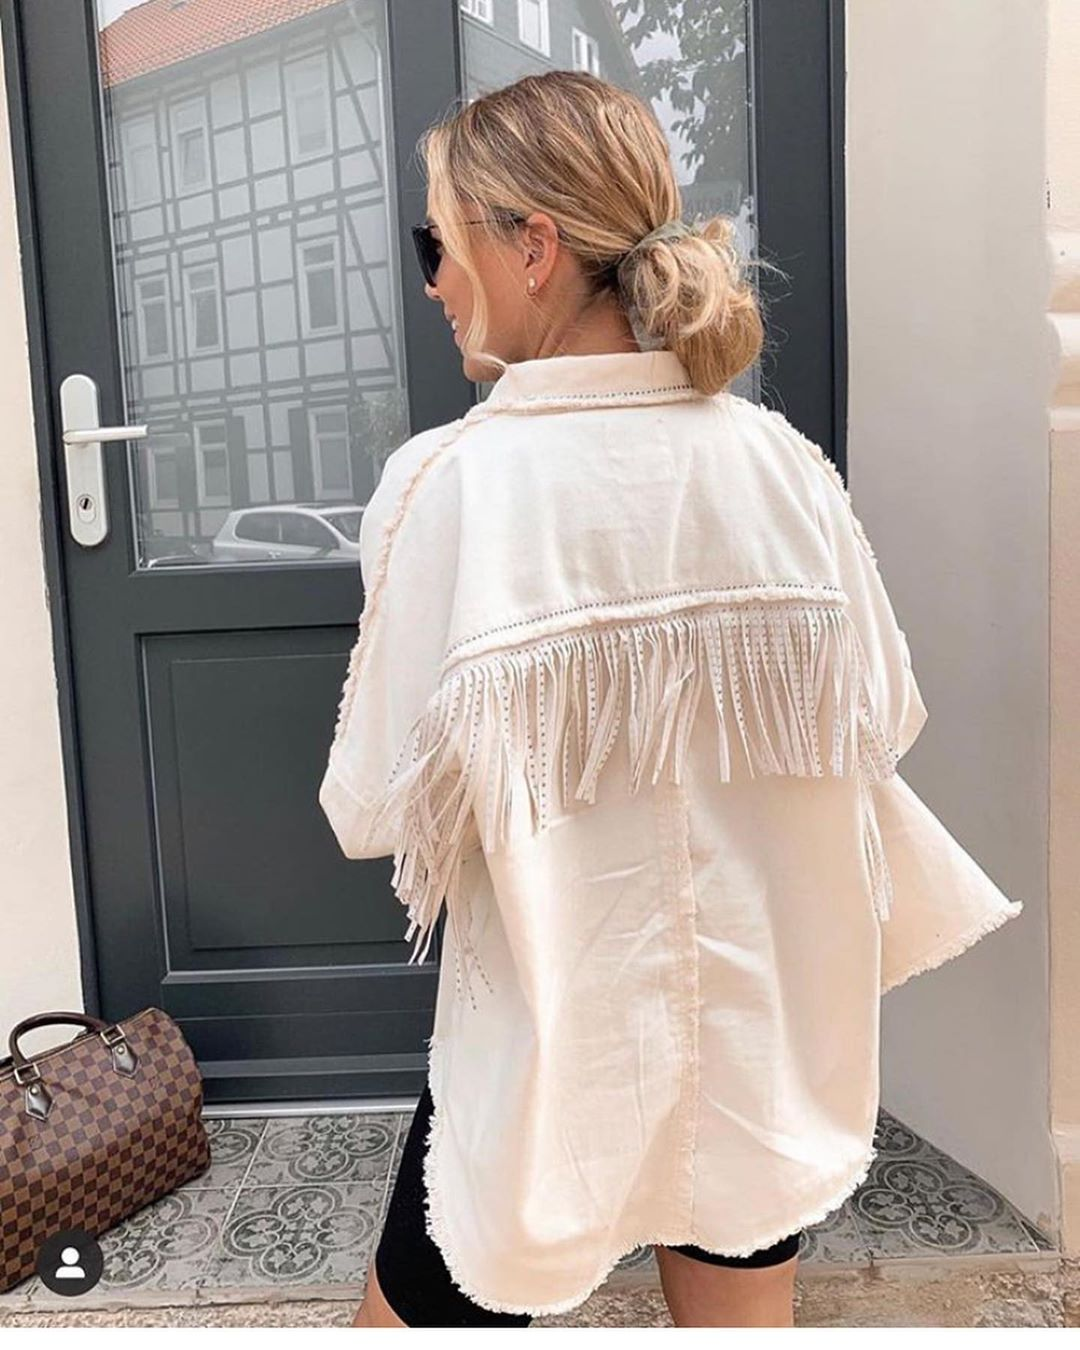 jacket with fringes and studs de Zara sur look_by_zara_hm